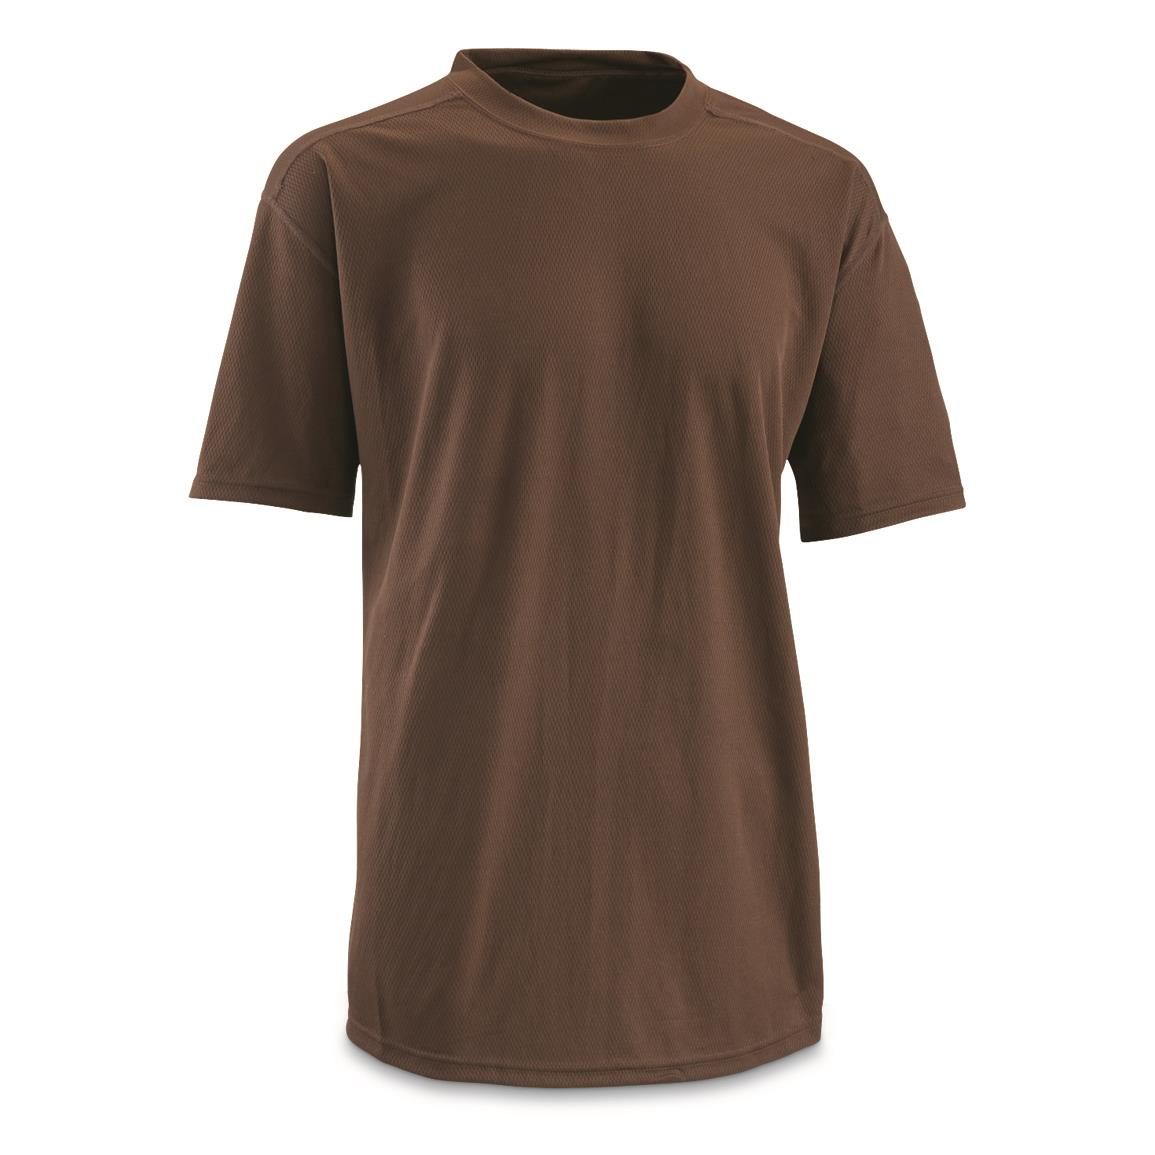 British Military Surplus CoolMax T Shirts, 2 Pack, New, Brown